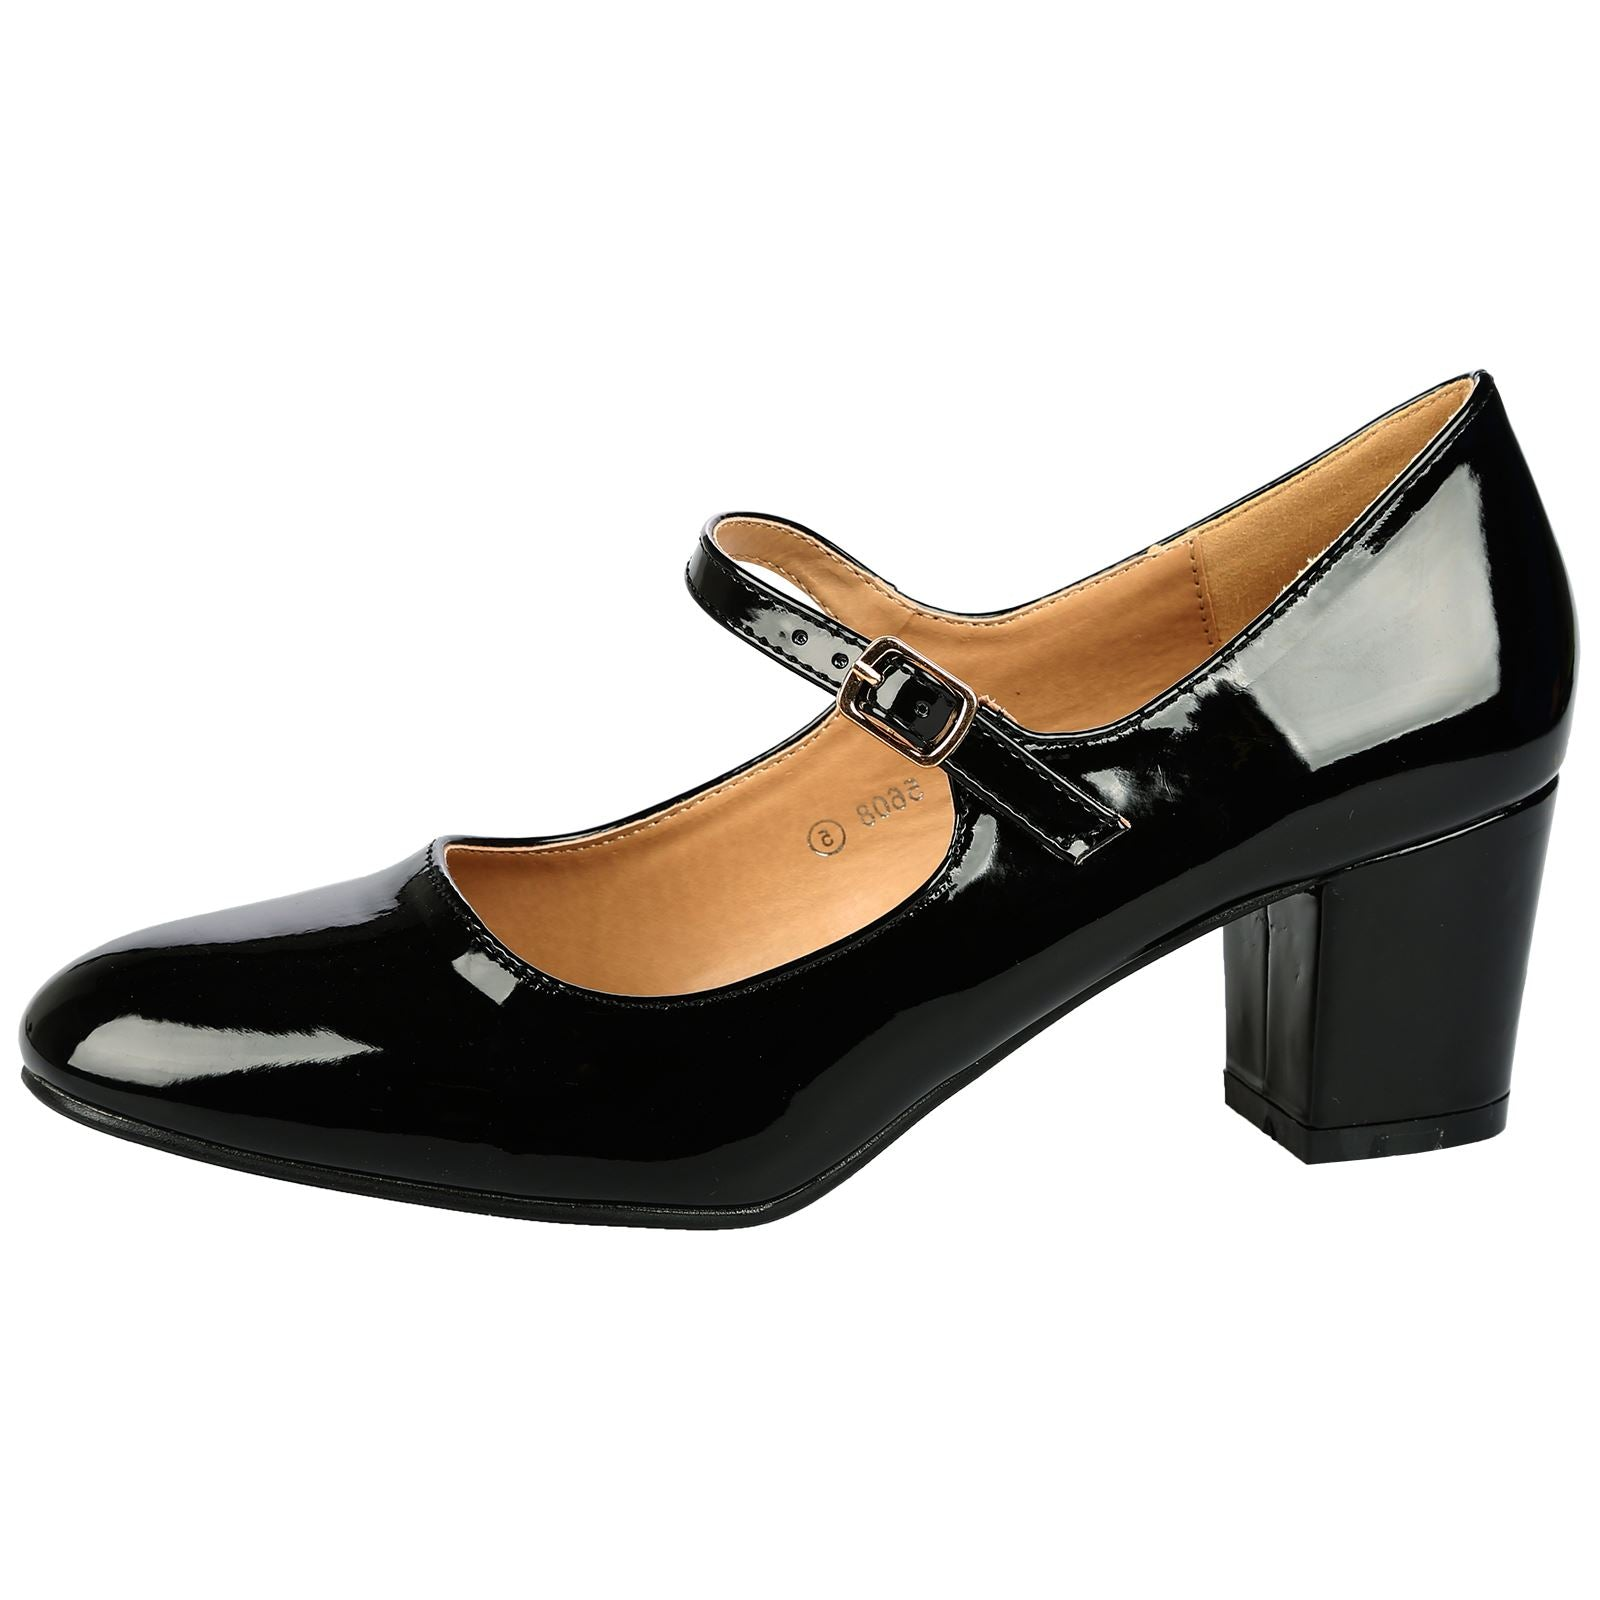 Xanthe Classic Block Heel Mary Janes in Black Patent – Feet First ...